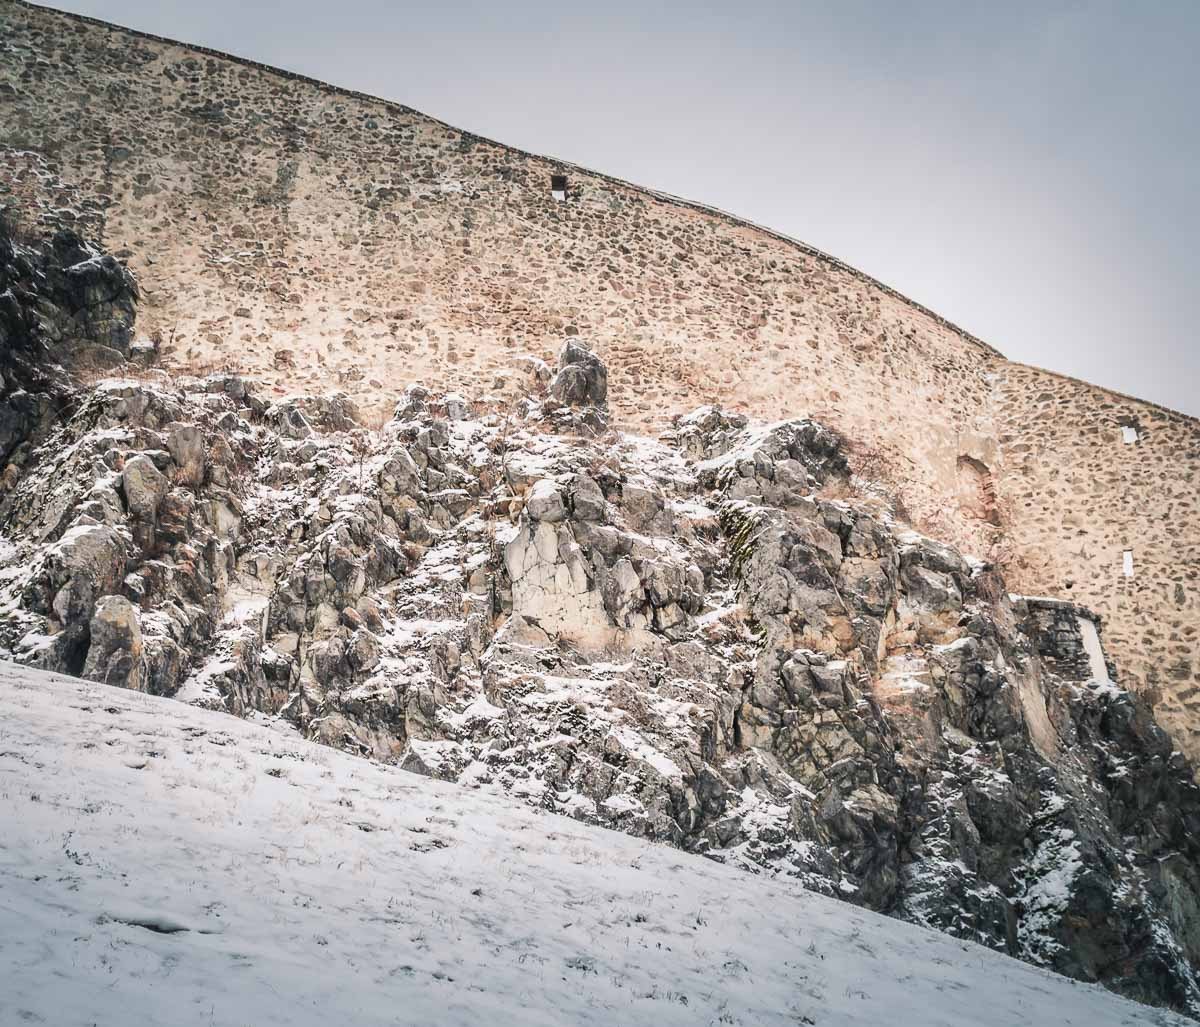 Large rocks and the defense wall.